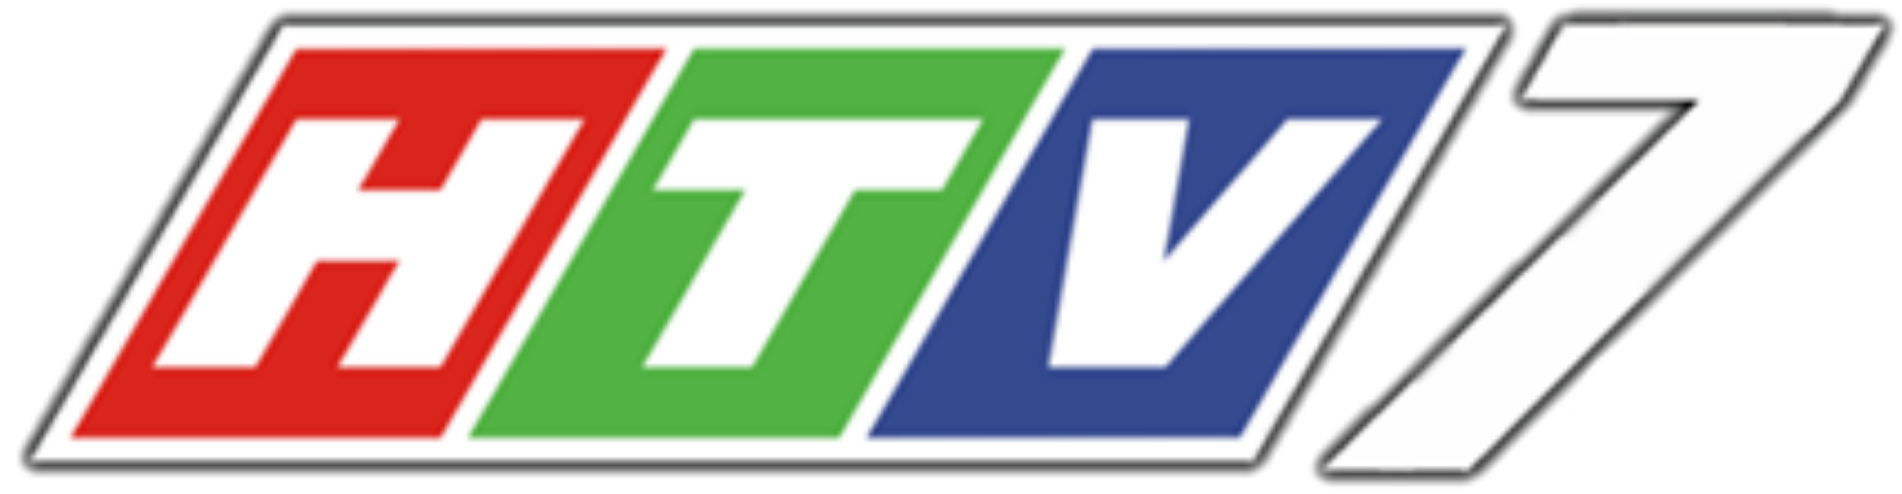 HTV7 (2016-present).png